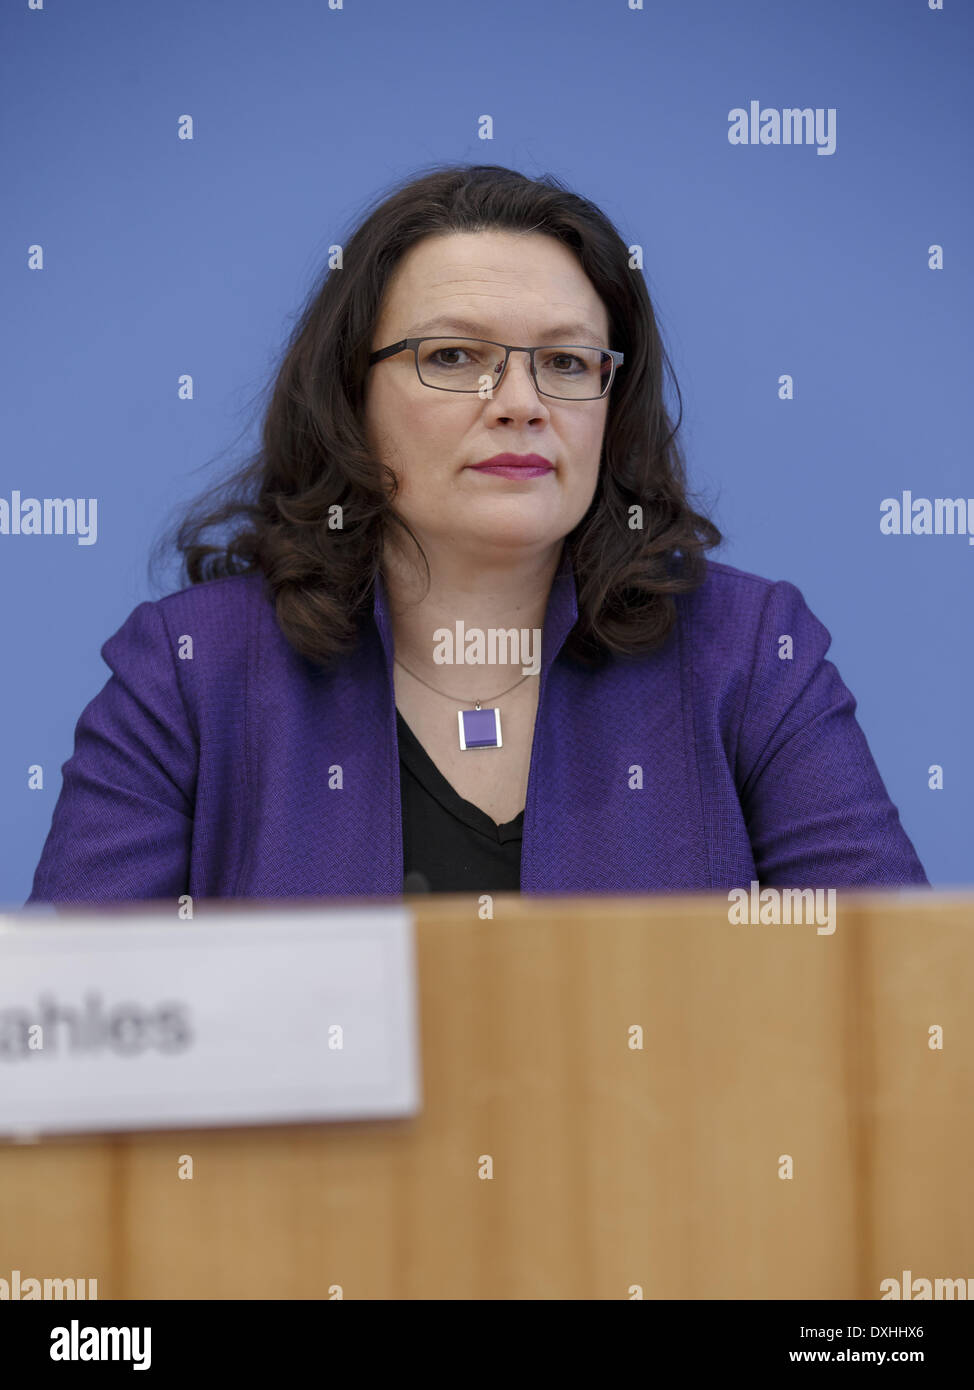 Berlin, Germany. 26th Mar, 2014. Interior minister Thomas de Maizière and labor Minister Andrea Nahles give a press conference on the topic 'Use of social security systems by EU citizens' in the House of the Federal press conference in Berlin./Picture: Andrea Nahles (SPD), German Minister of Labour and Social Affairs. Credit:  Reynaldo Paganelli/NurPhoto/ZUMAPRESS.com/Alamy Live News Stock Photo